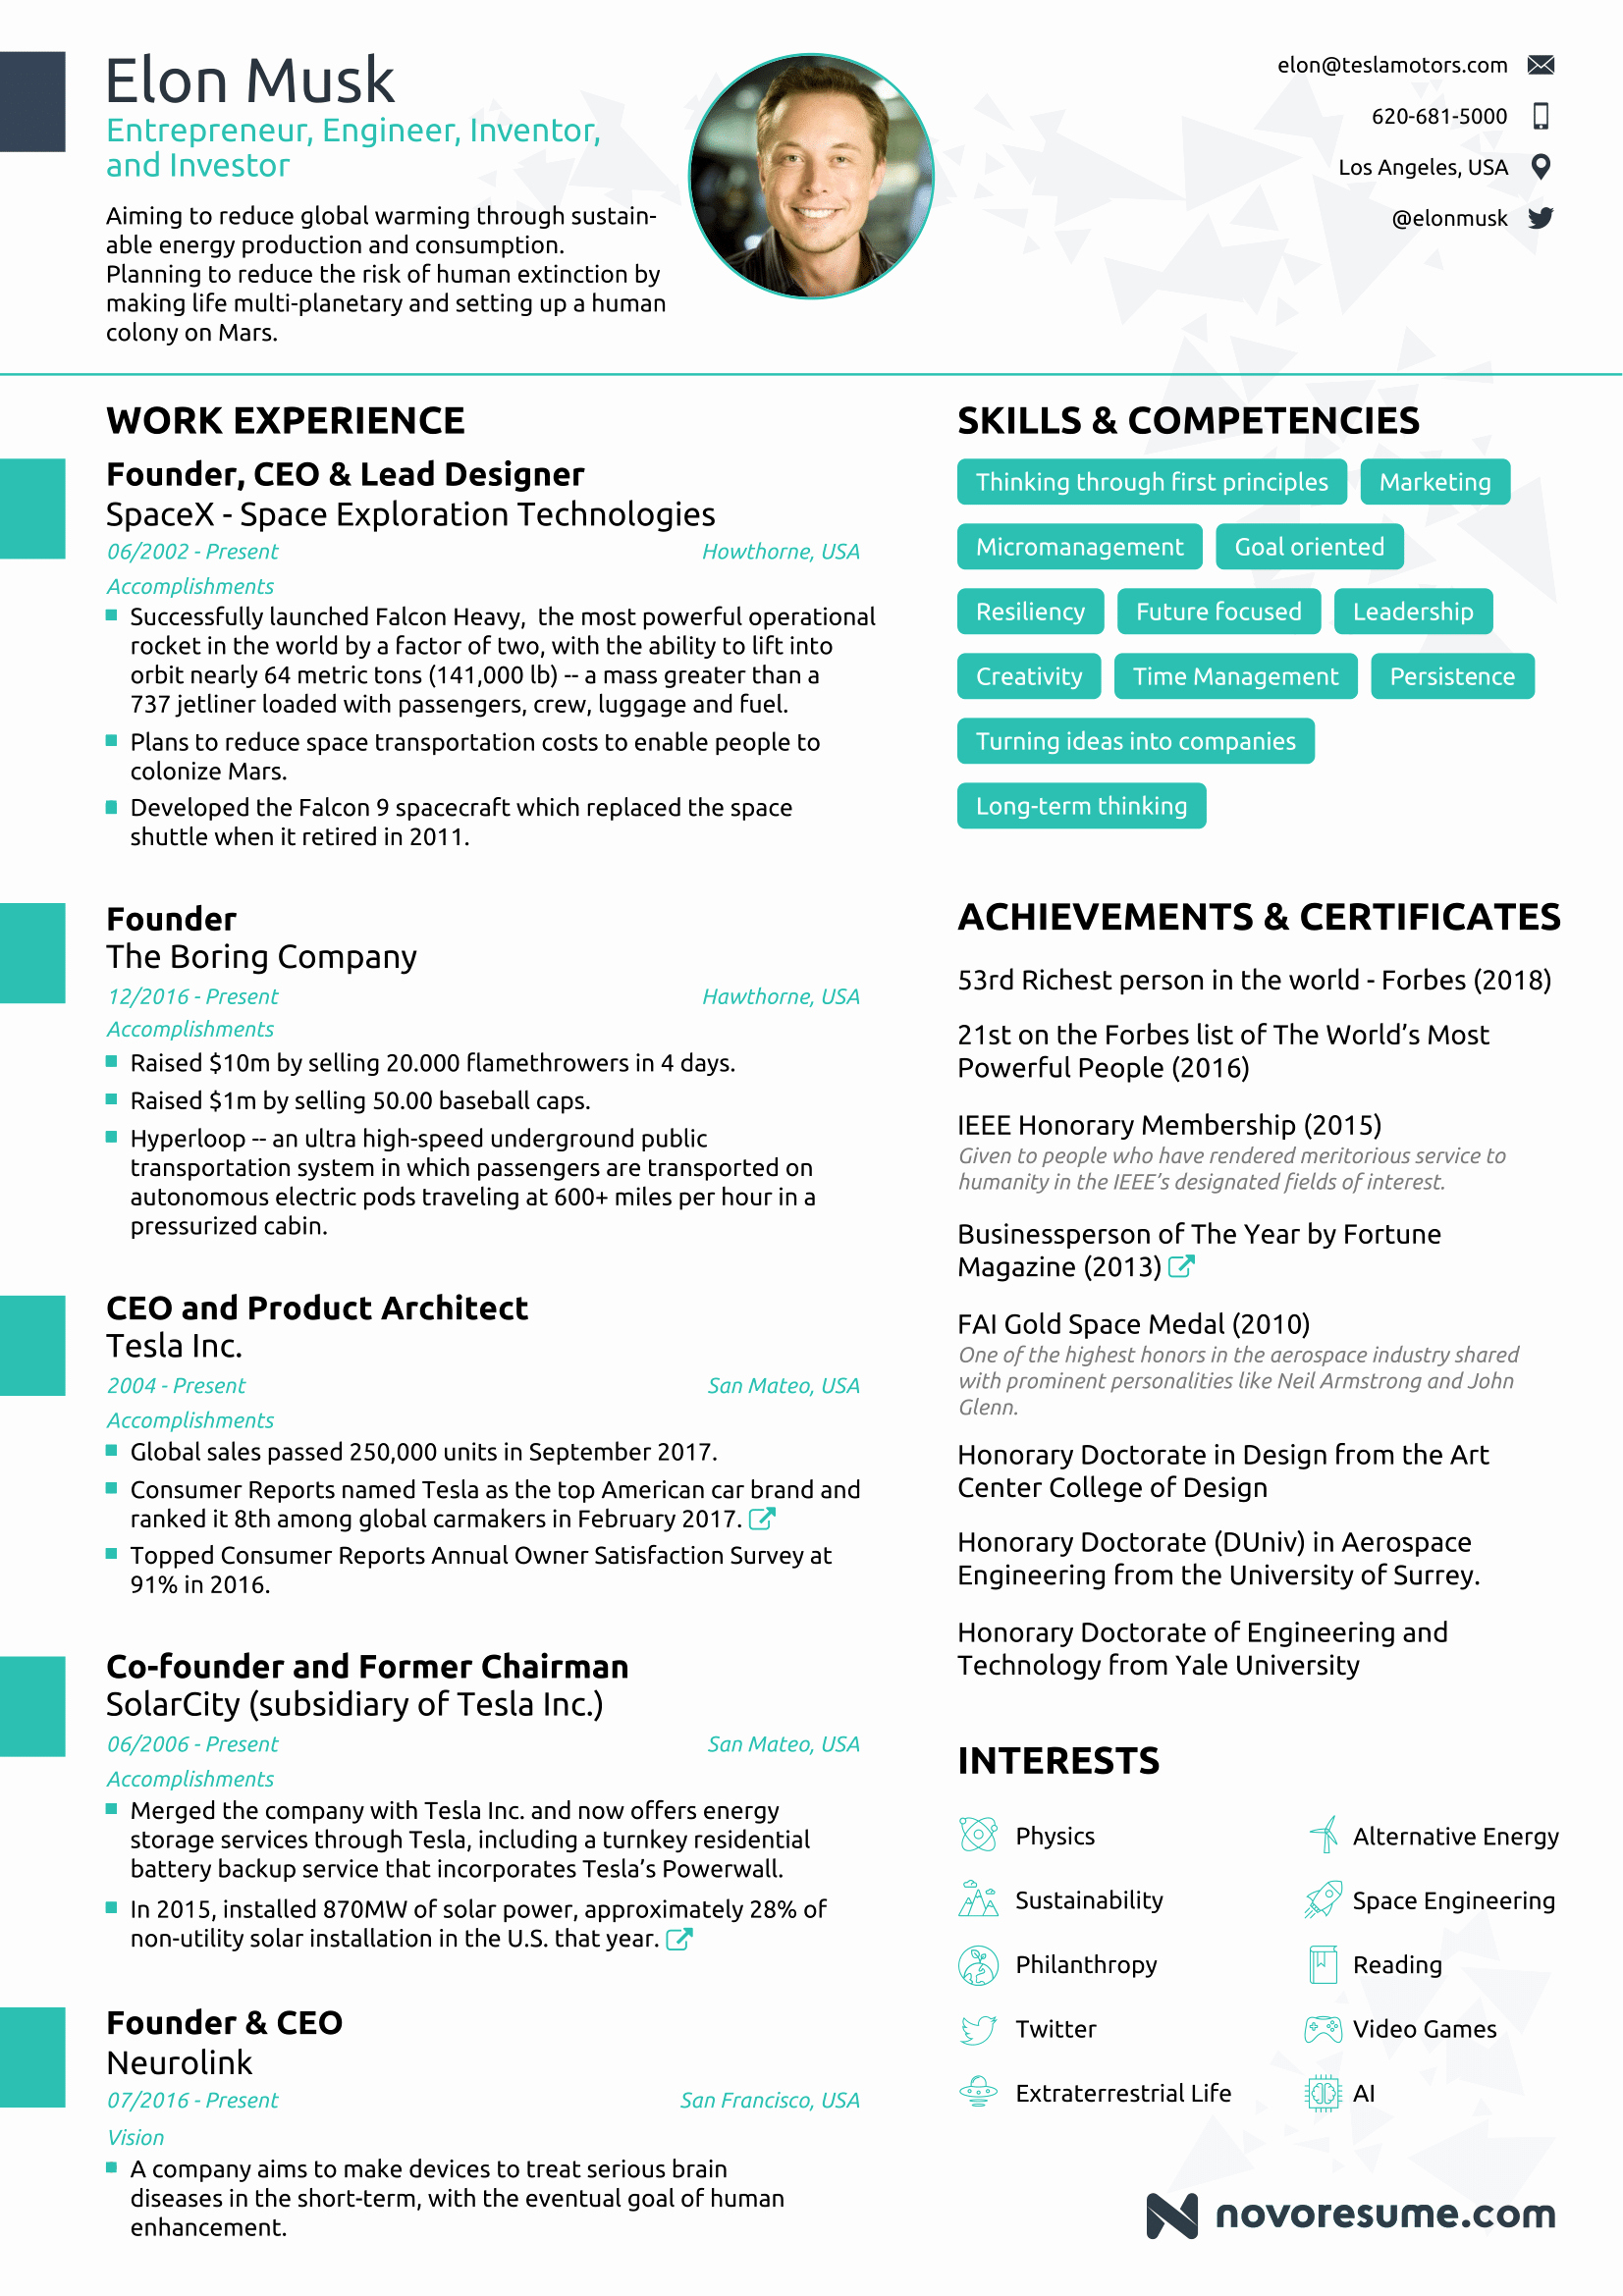 One Page Resume Template Free Best Of the Résumé Of Elon Musk by Novorésumé